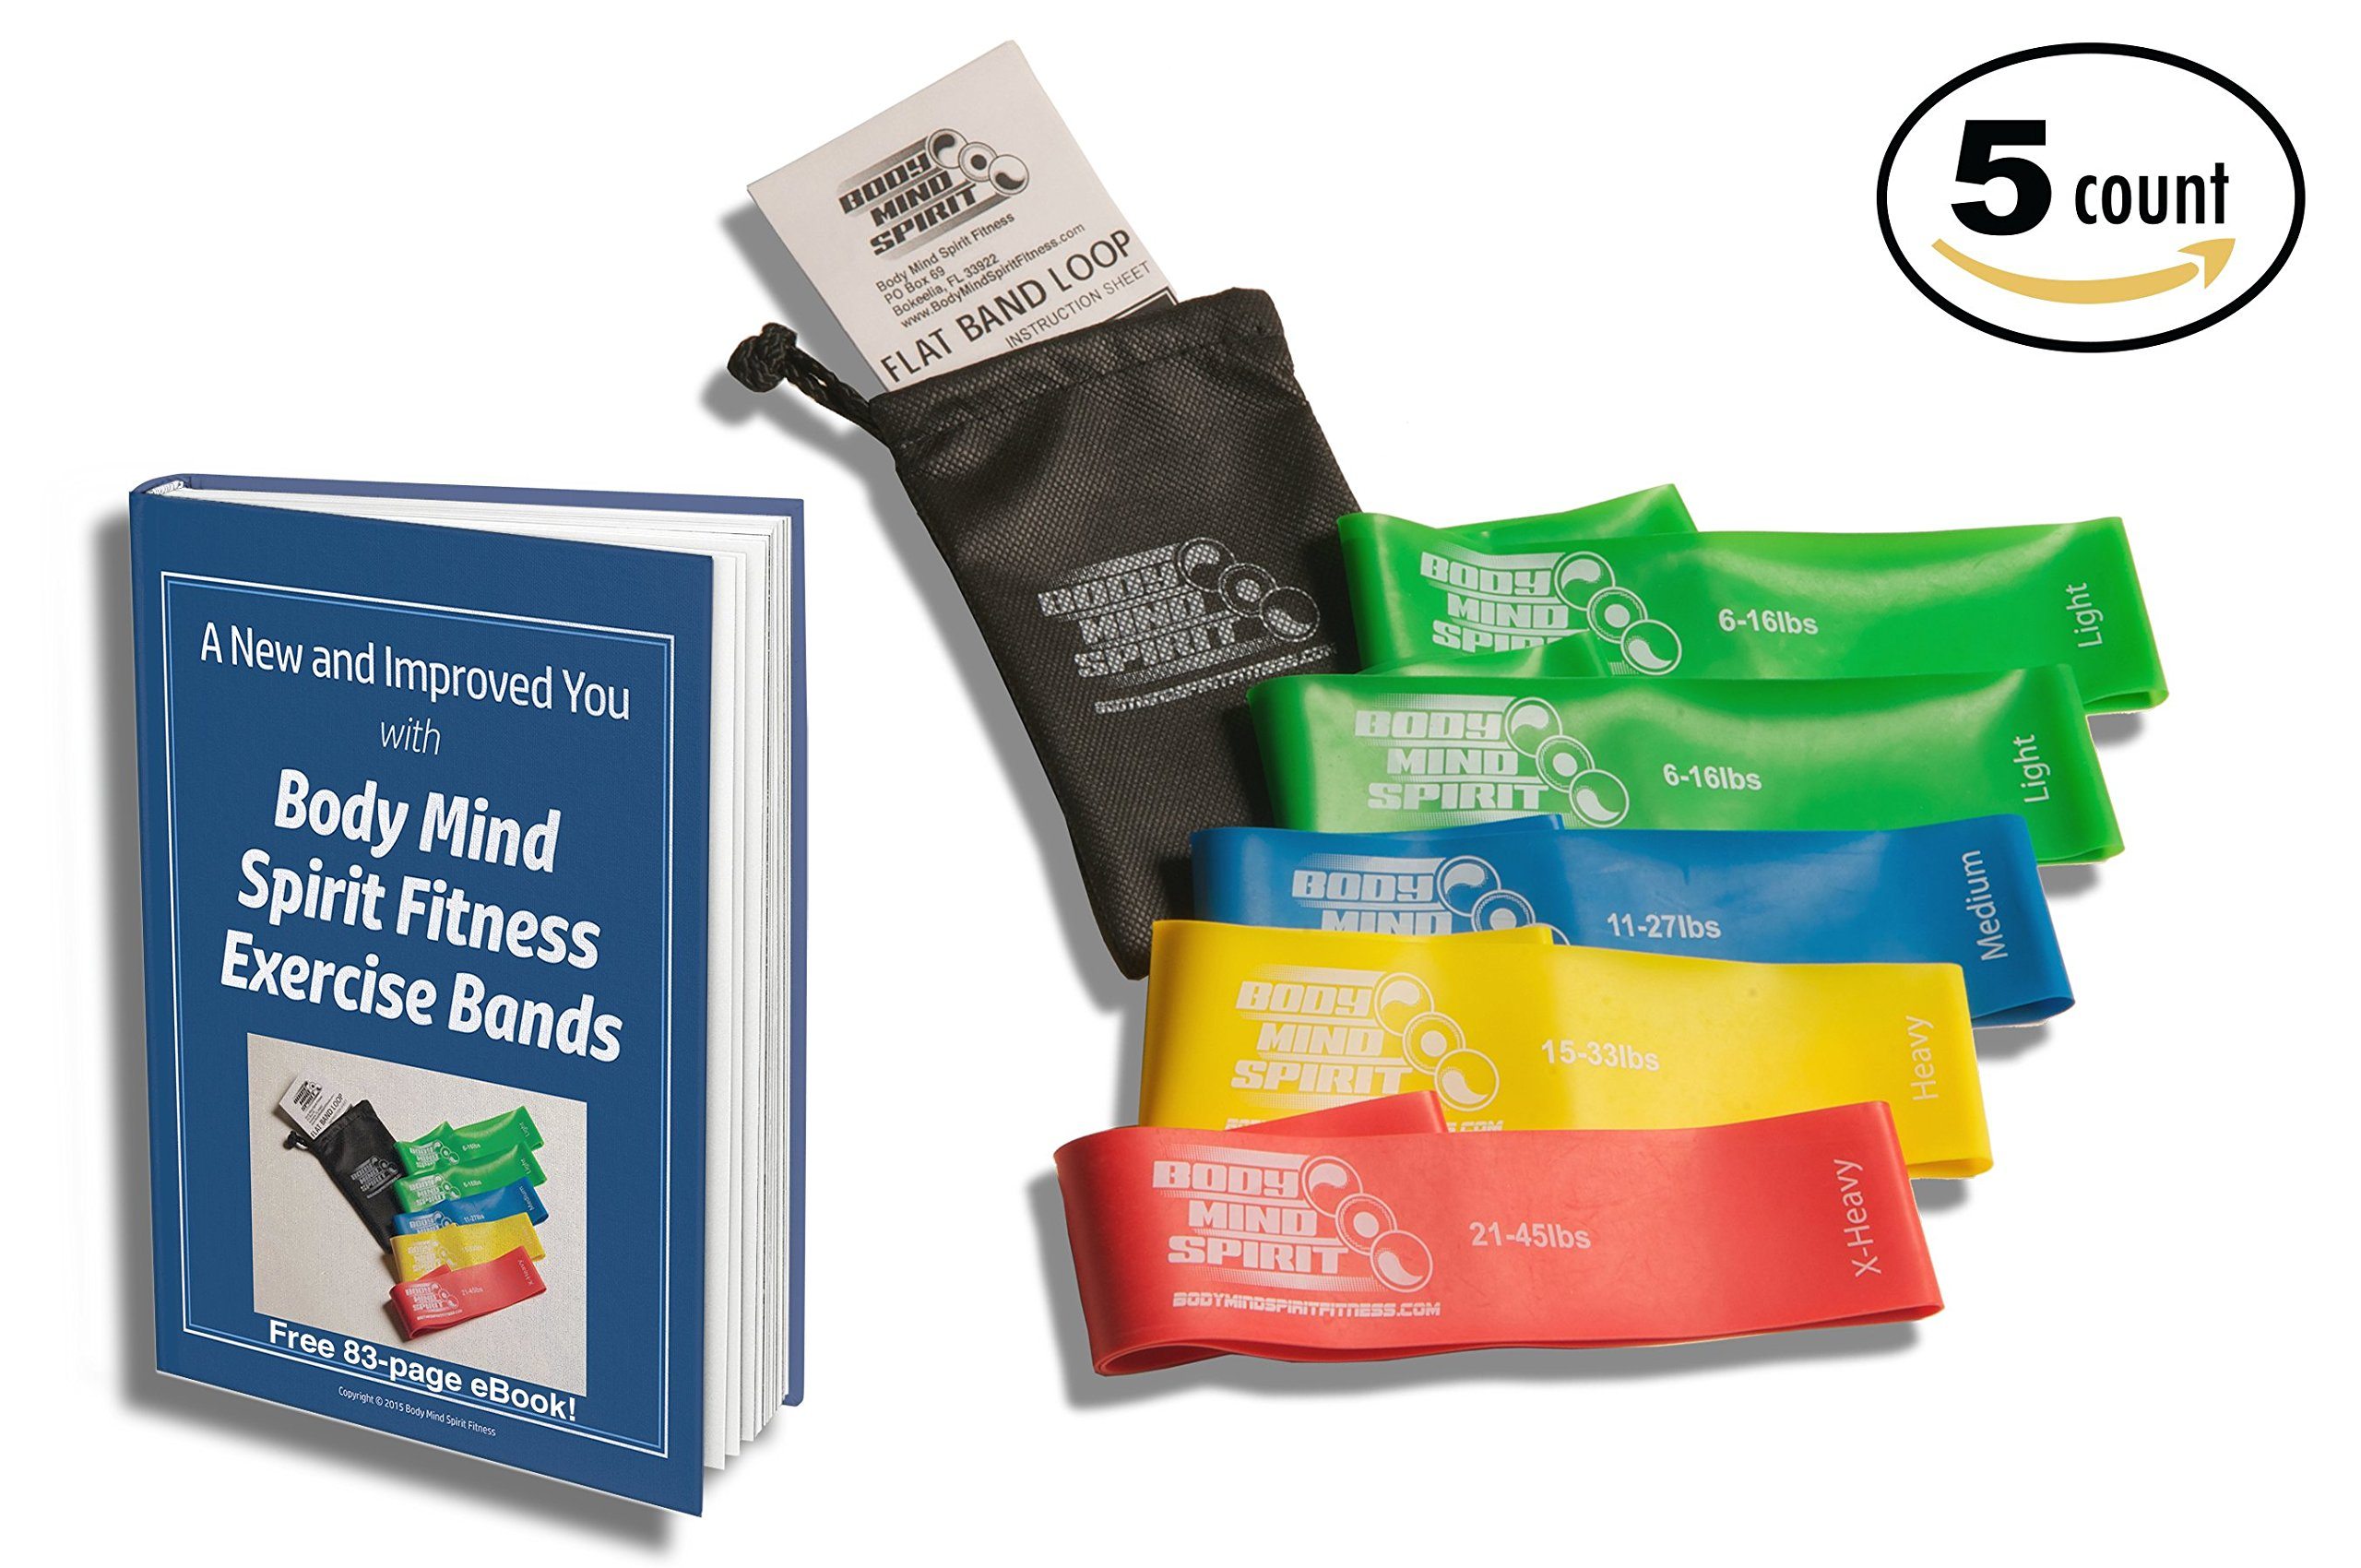 5 Exercise Bands / 2 Light, 1 Medium, 1 Heavy & 1 Extra Heavy / Bonus Carrying Case / FREE E-BOOK by Body Mind Spirit Fitness